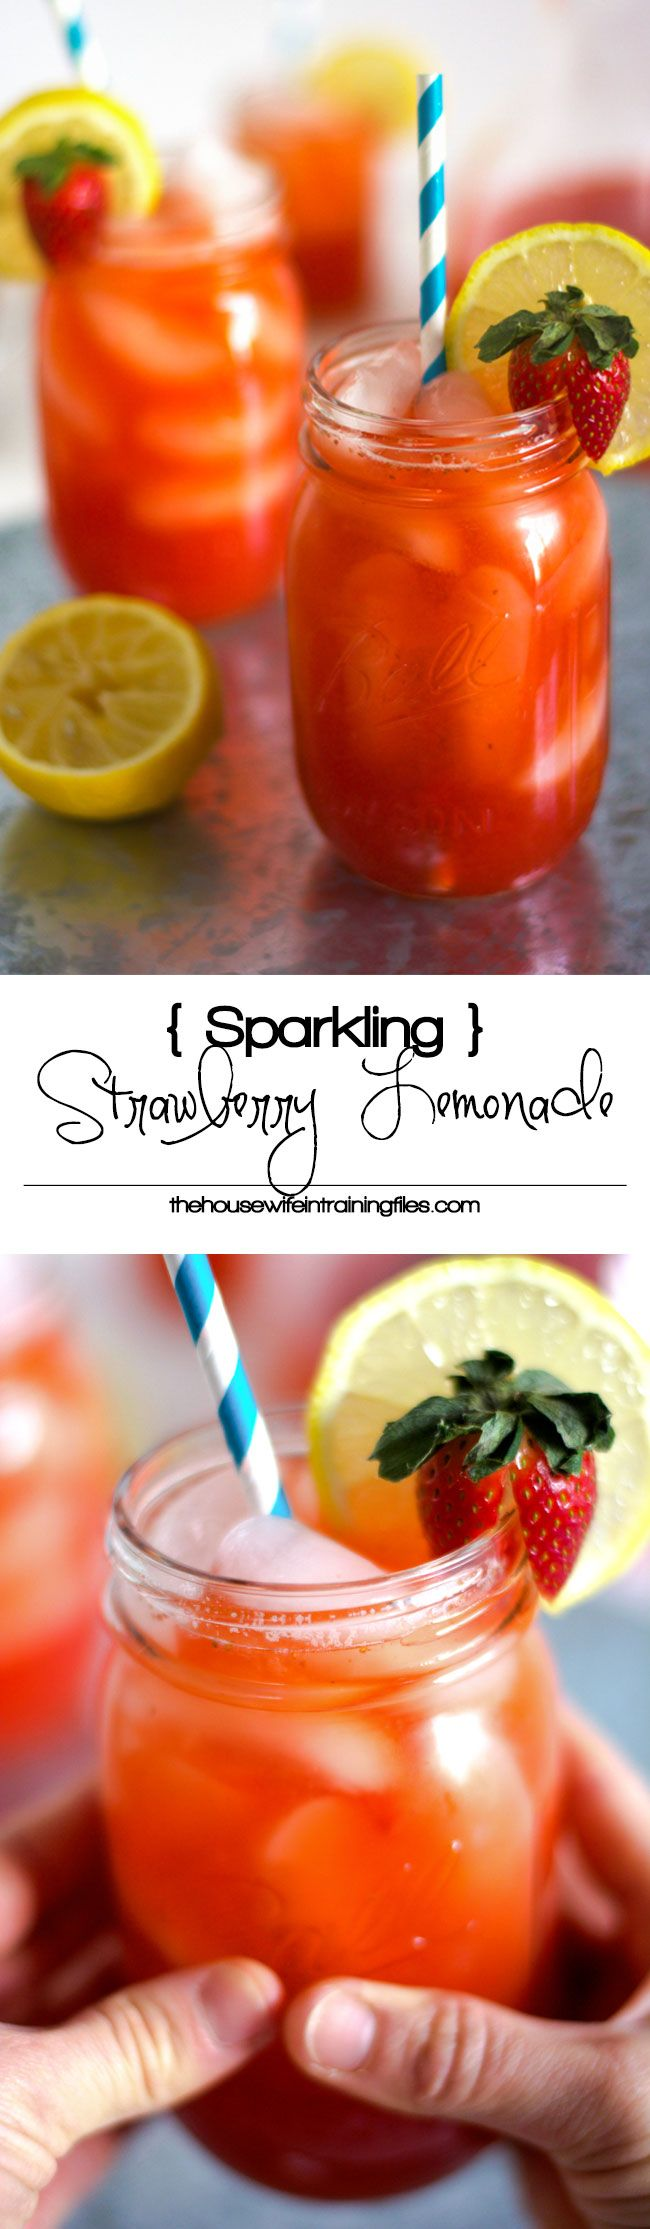 Skinny Sparkling Strawberry Lemonade is healthy, sweet and tart all in one sip! Fresh strawberries mixed with fresh lemonade and a touch of sweetness is the perfect refreshing drink! #lemonade #skinny #strawberry #drink